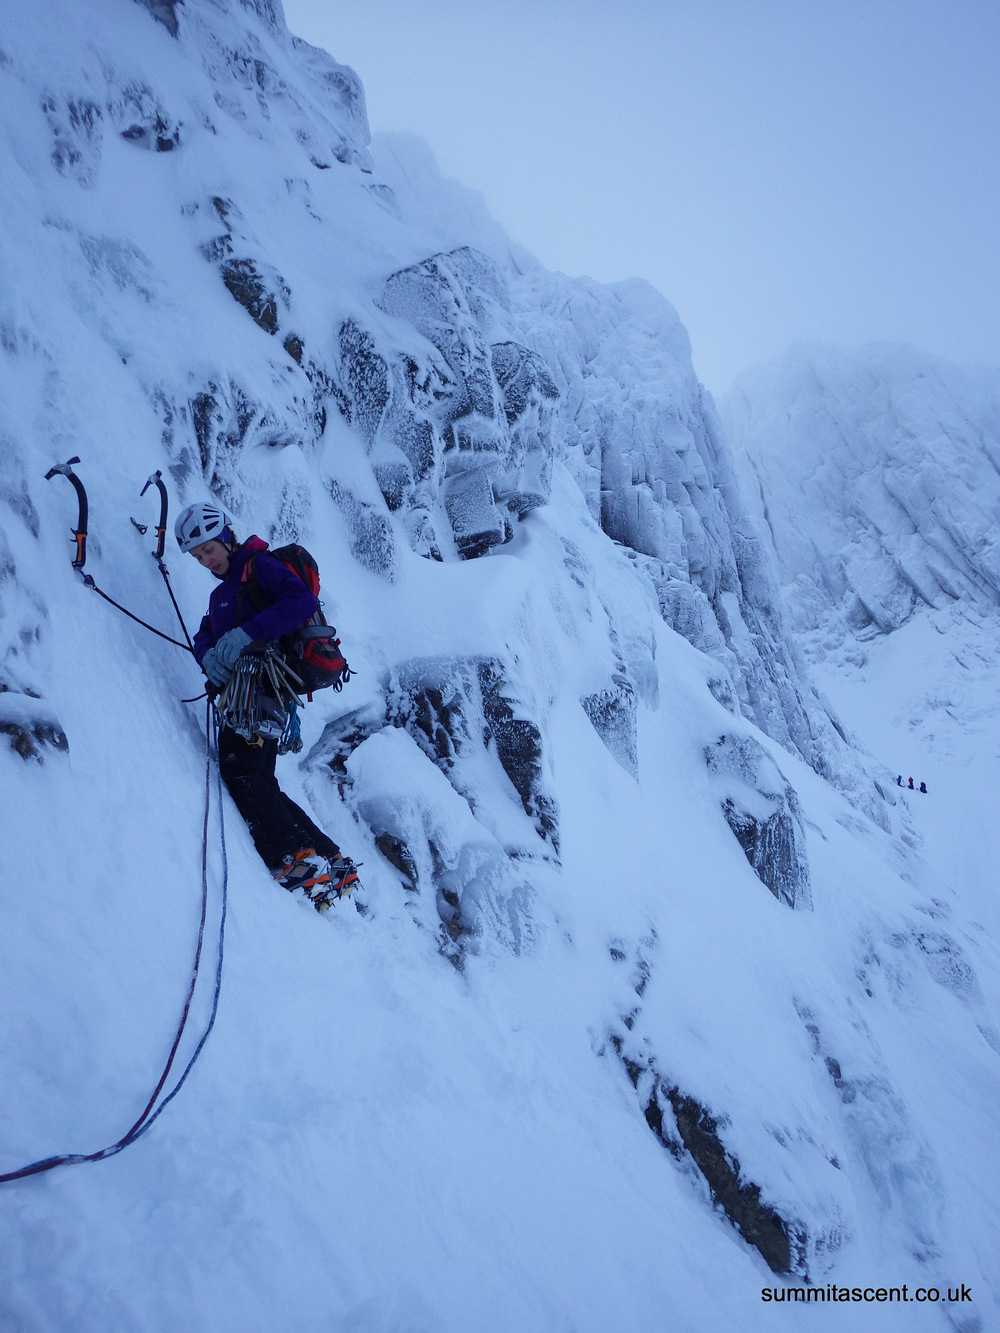 First Pitch of Green Gully